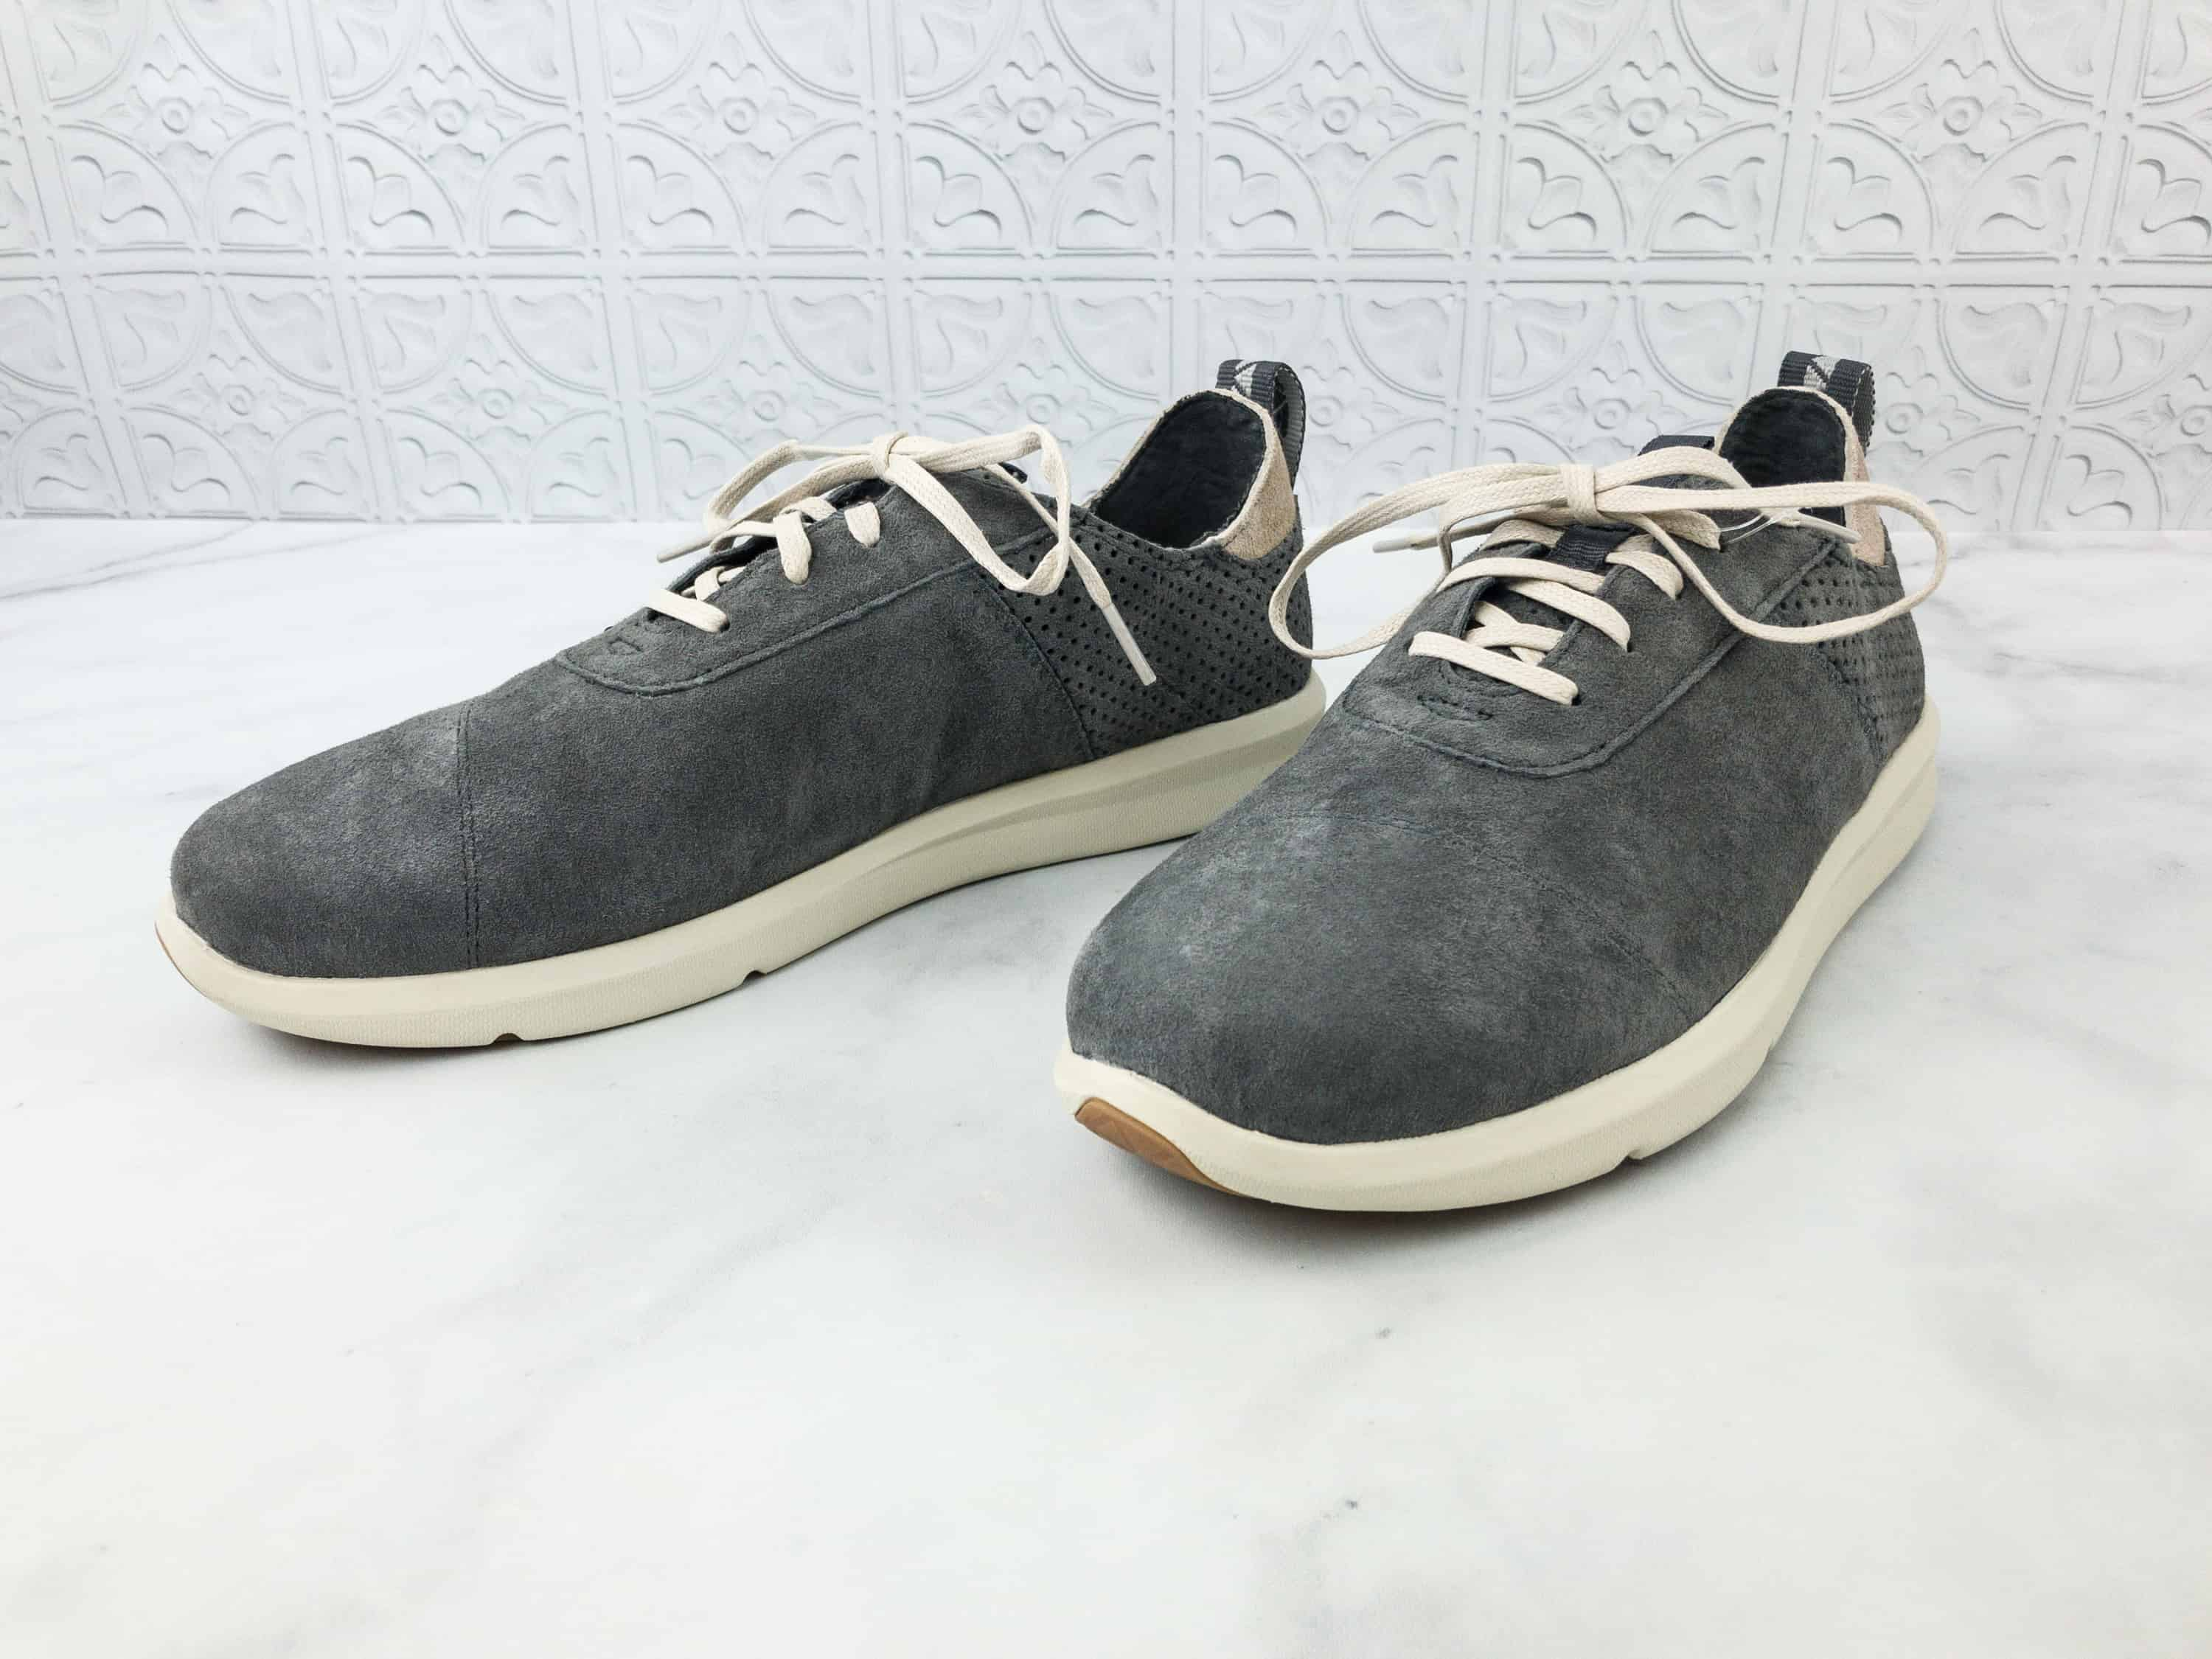 99ce976cfc3 Toms Cabrillo Perforated Suede Lace-Up Sneaker ( 85) These lace-up sneakers  are inspired by athletic wear trends – simple yet sporty with a perforated  heel ...